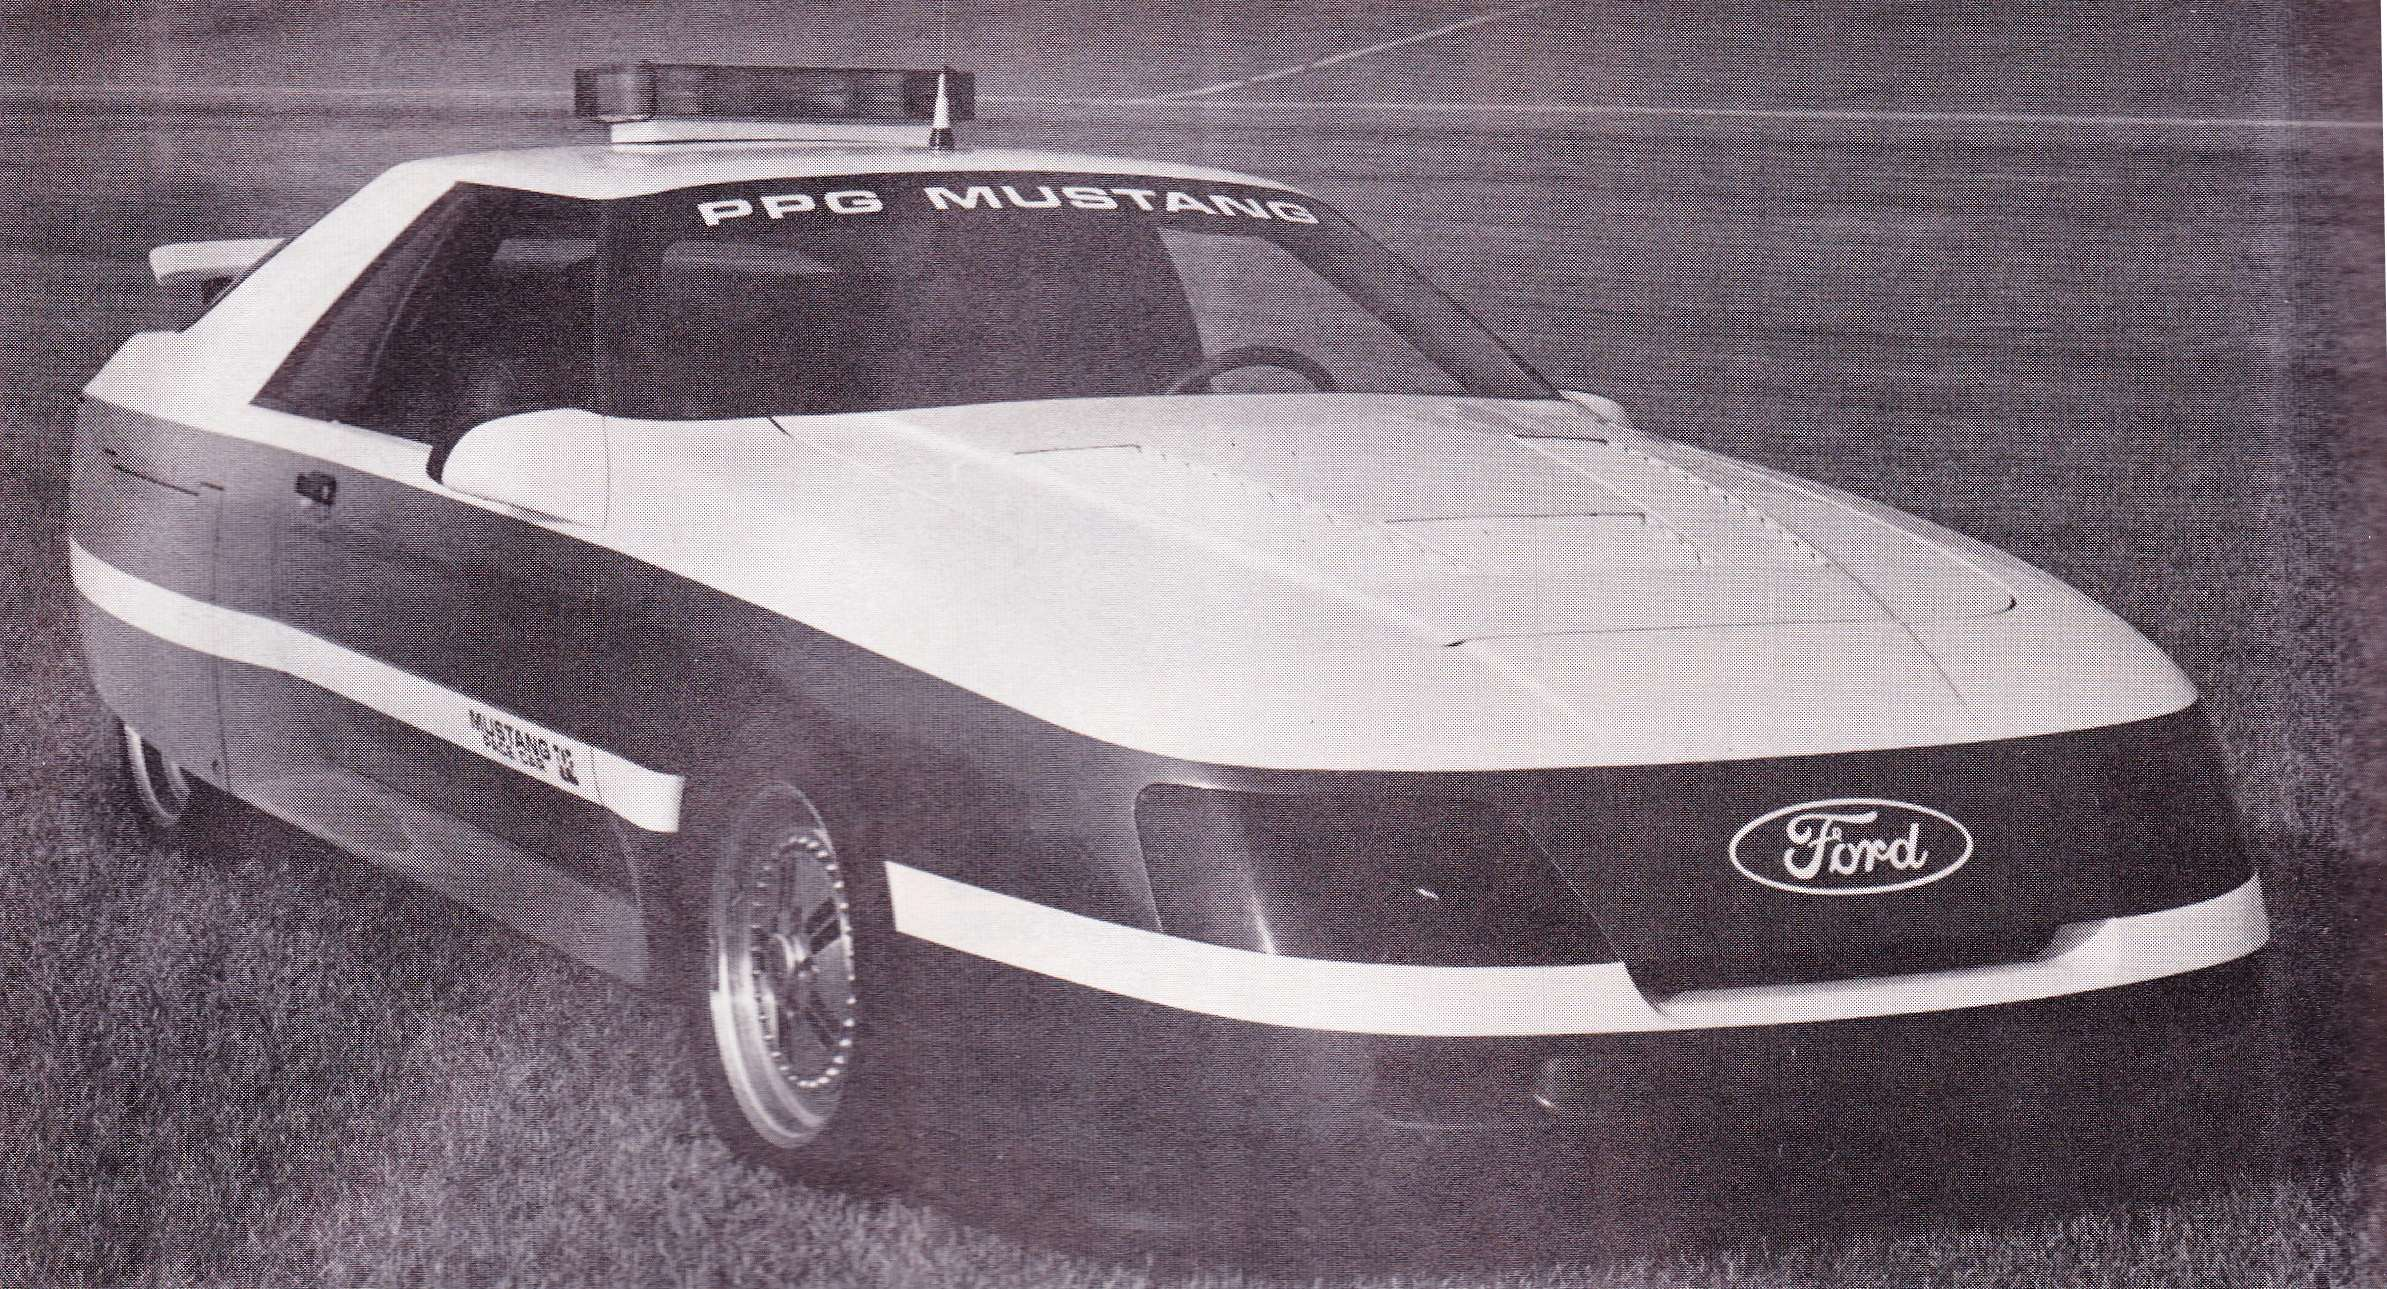 1986 PPG Mustang Pace Car 1986_m11